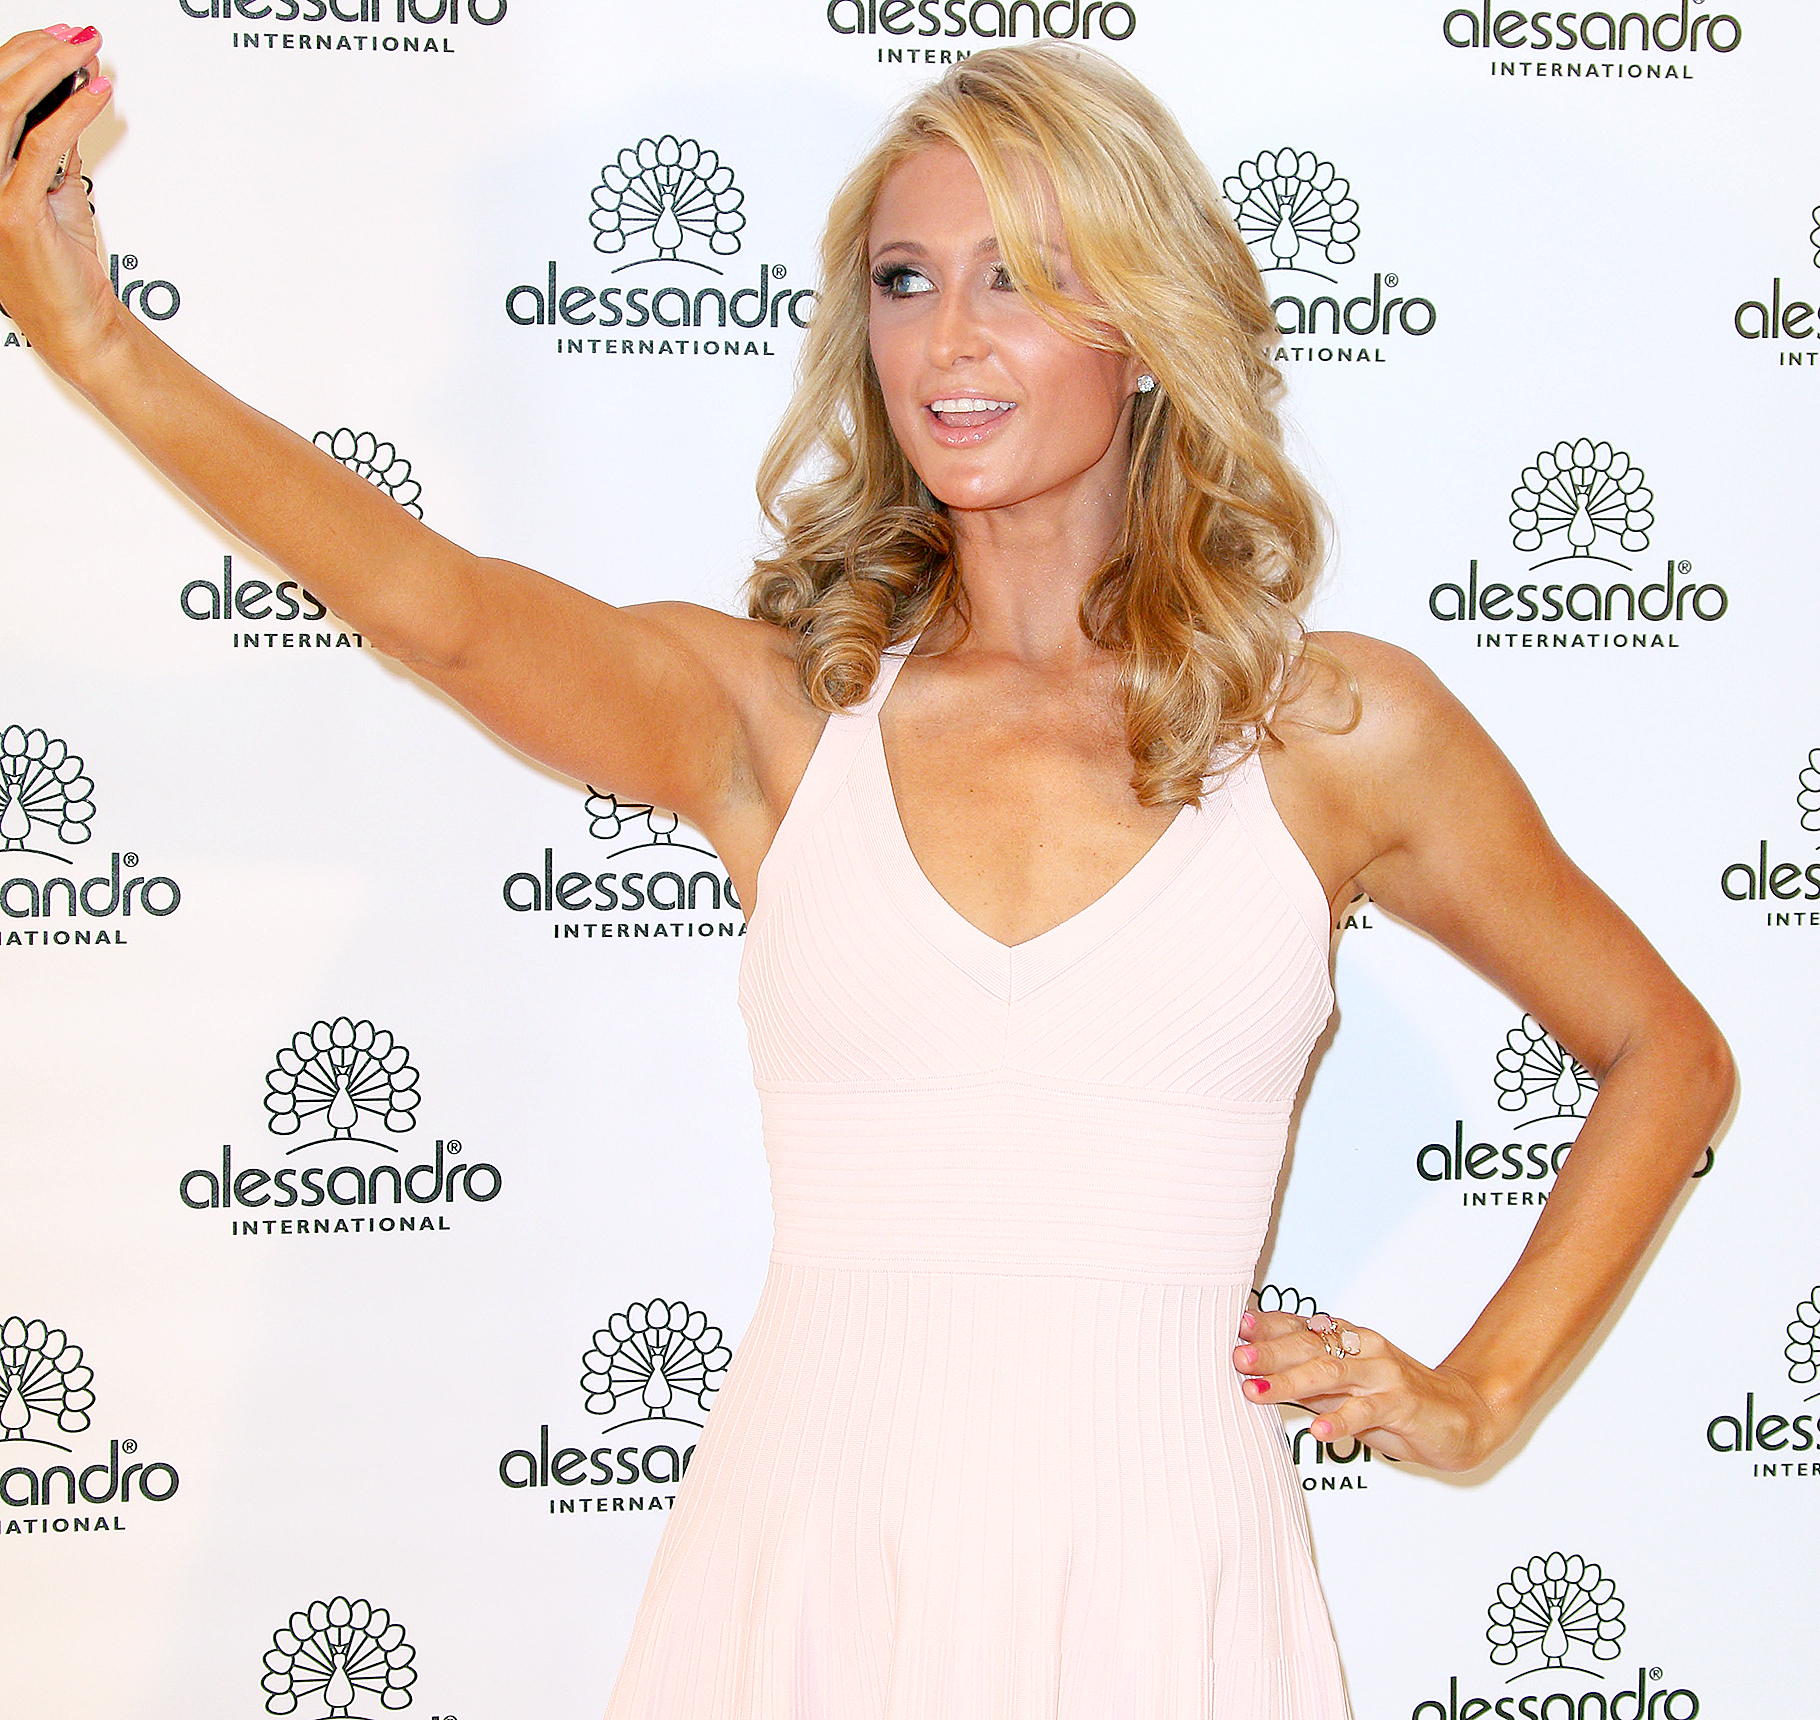 Lord Help Us: Paris Hilton Claims She Wrote Every Song on Her NewAlbum